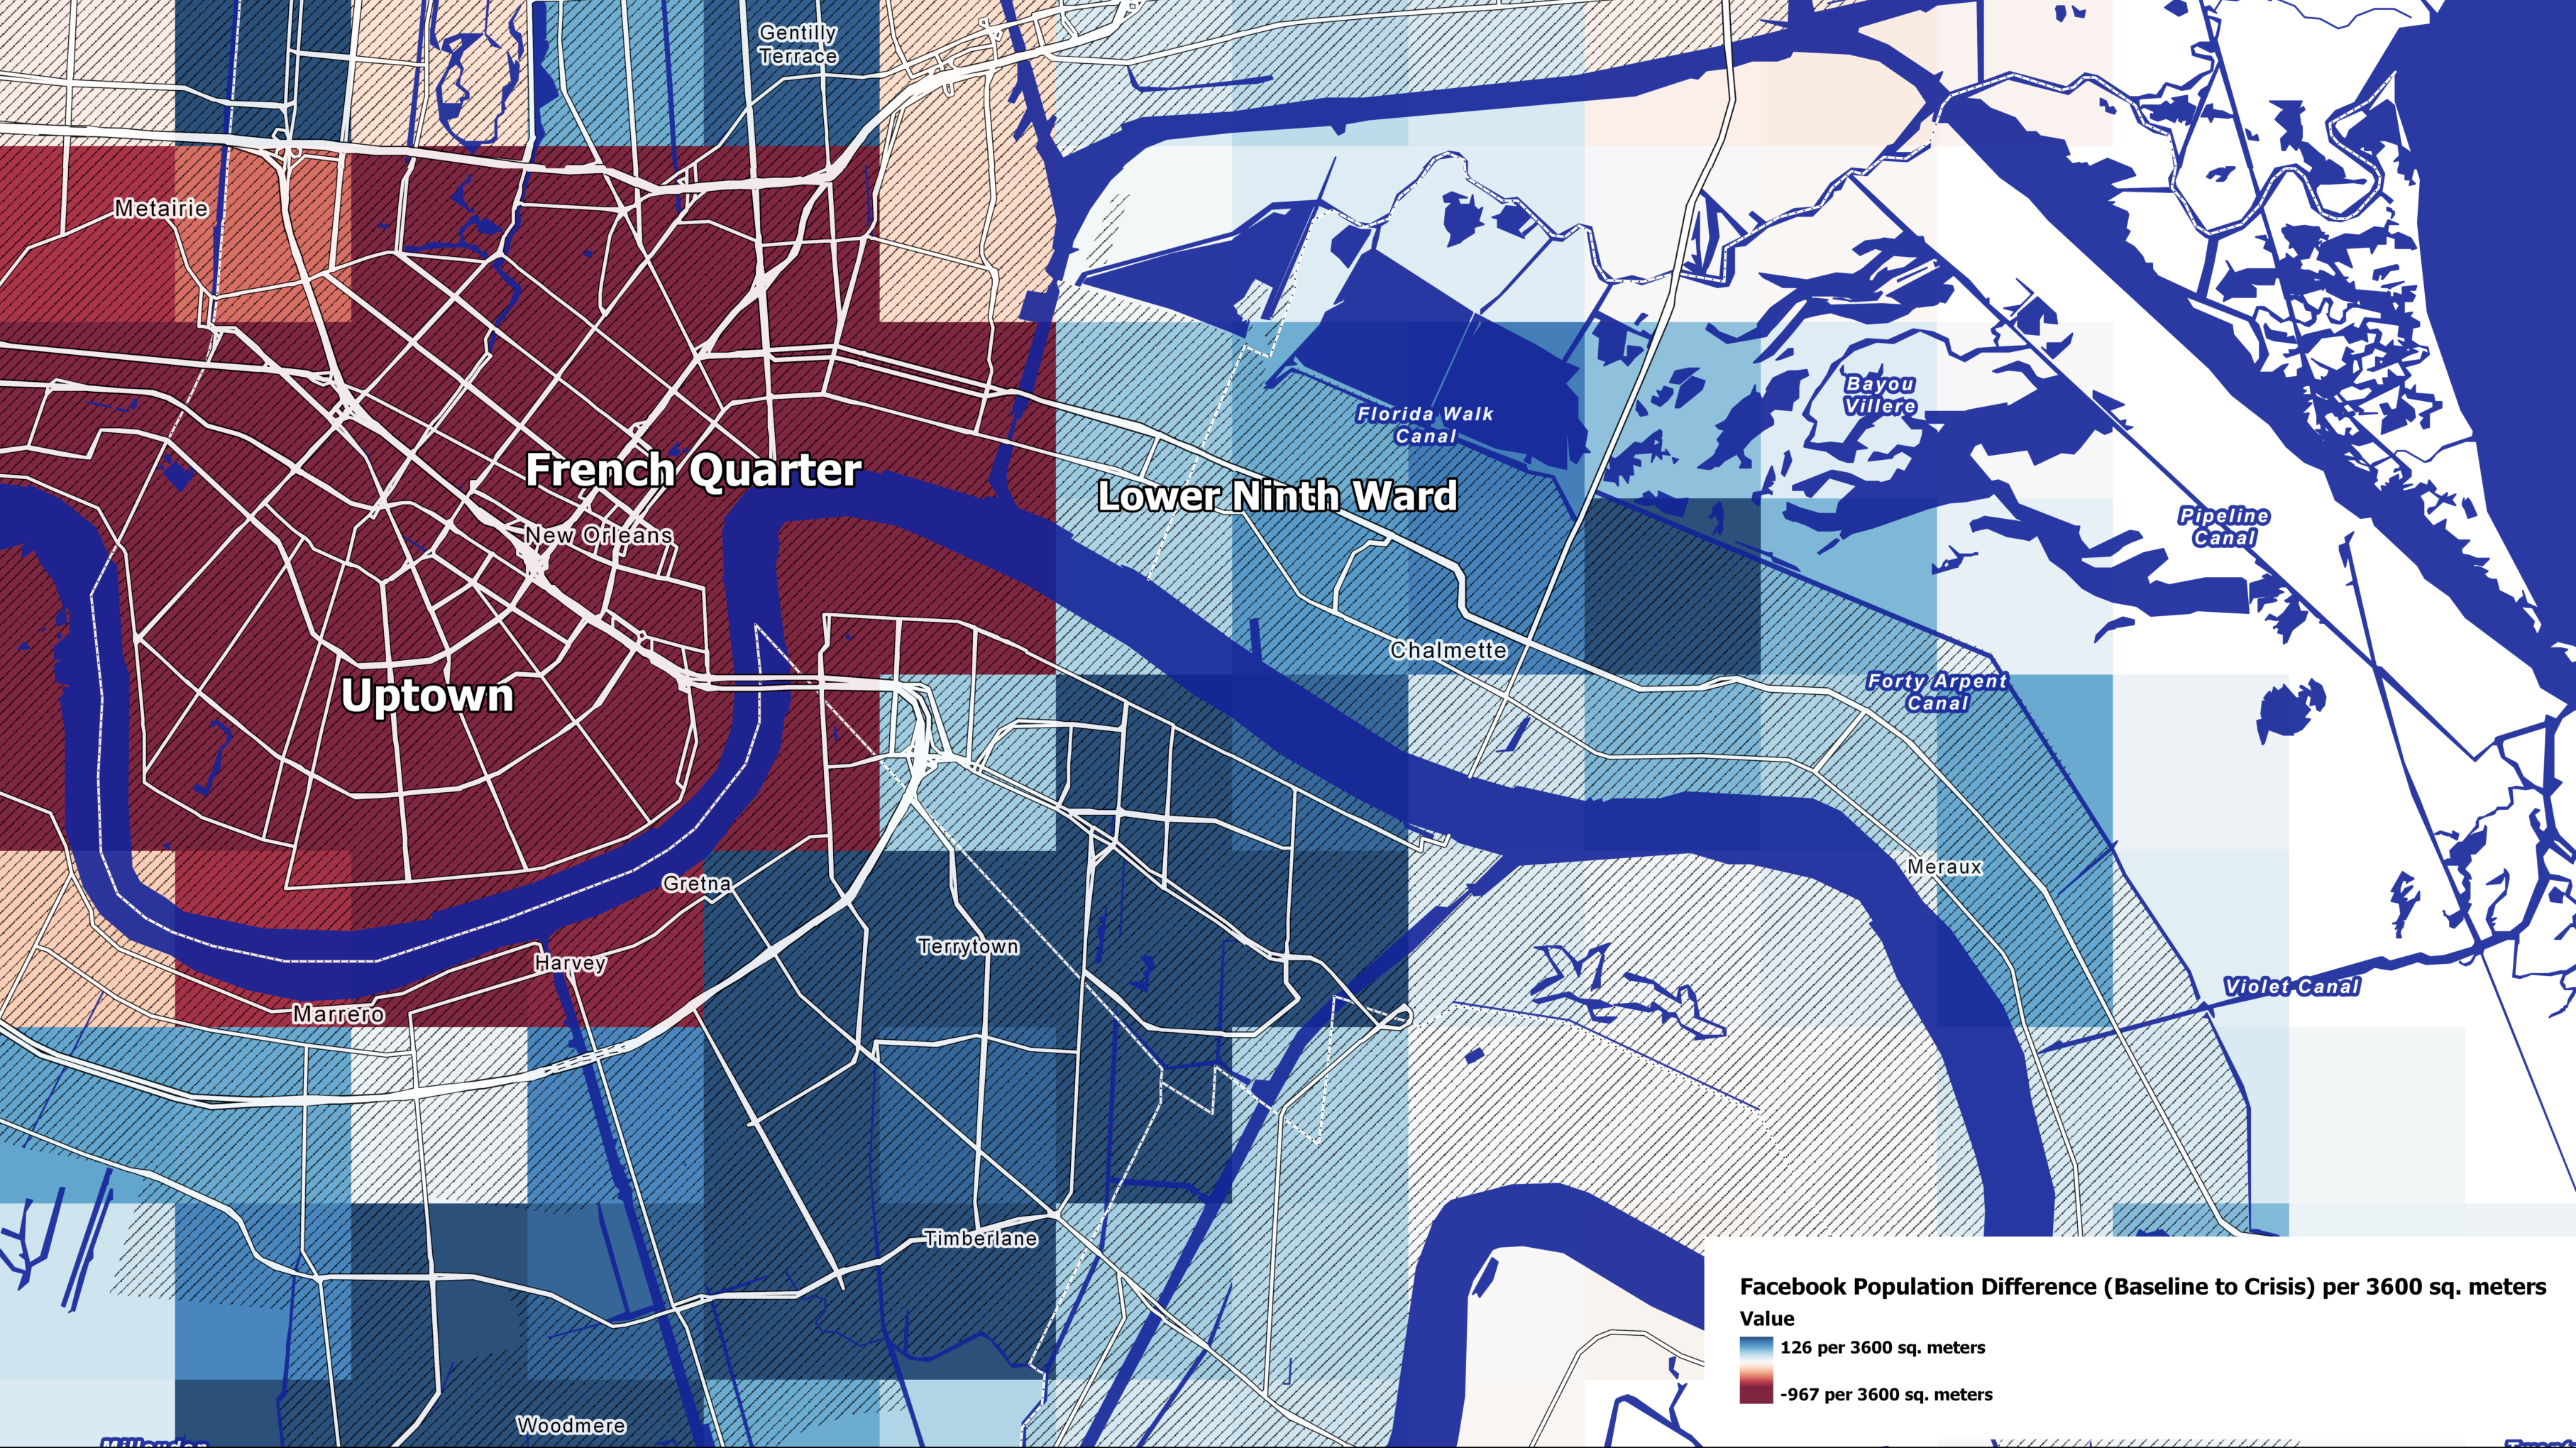 Population change in New Orleans. July 12, 2019 at 12 am. Map by Andrew Schroeder, research and analysis director at Direct Relief.